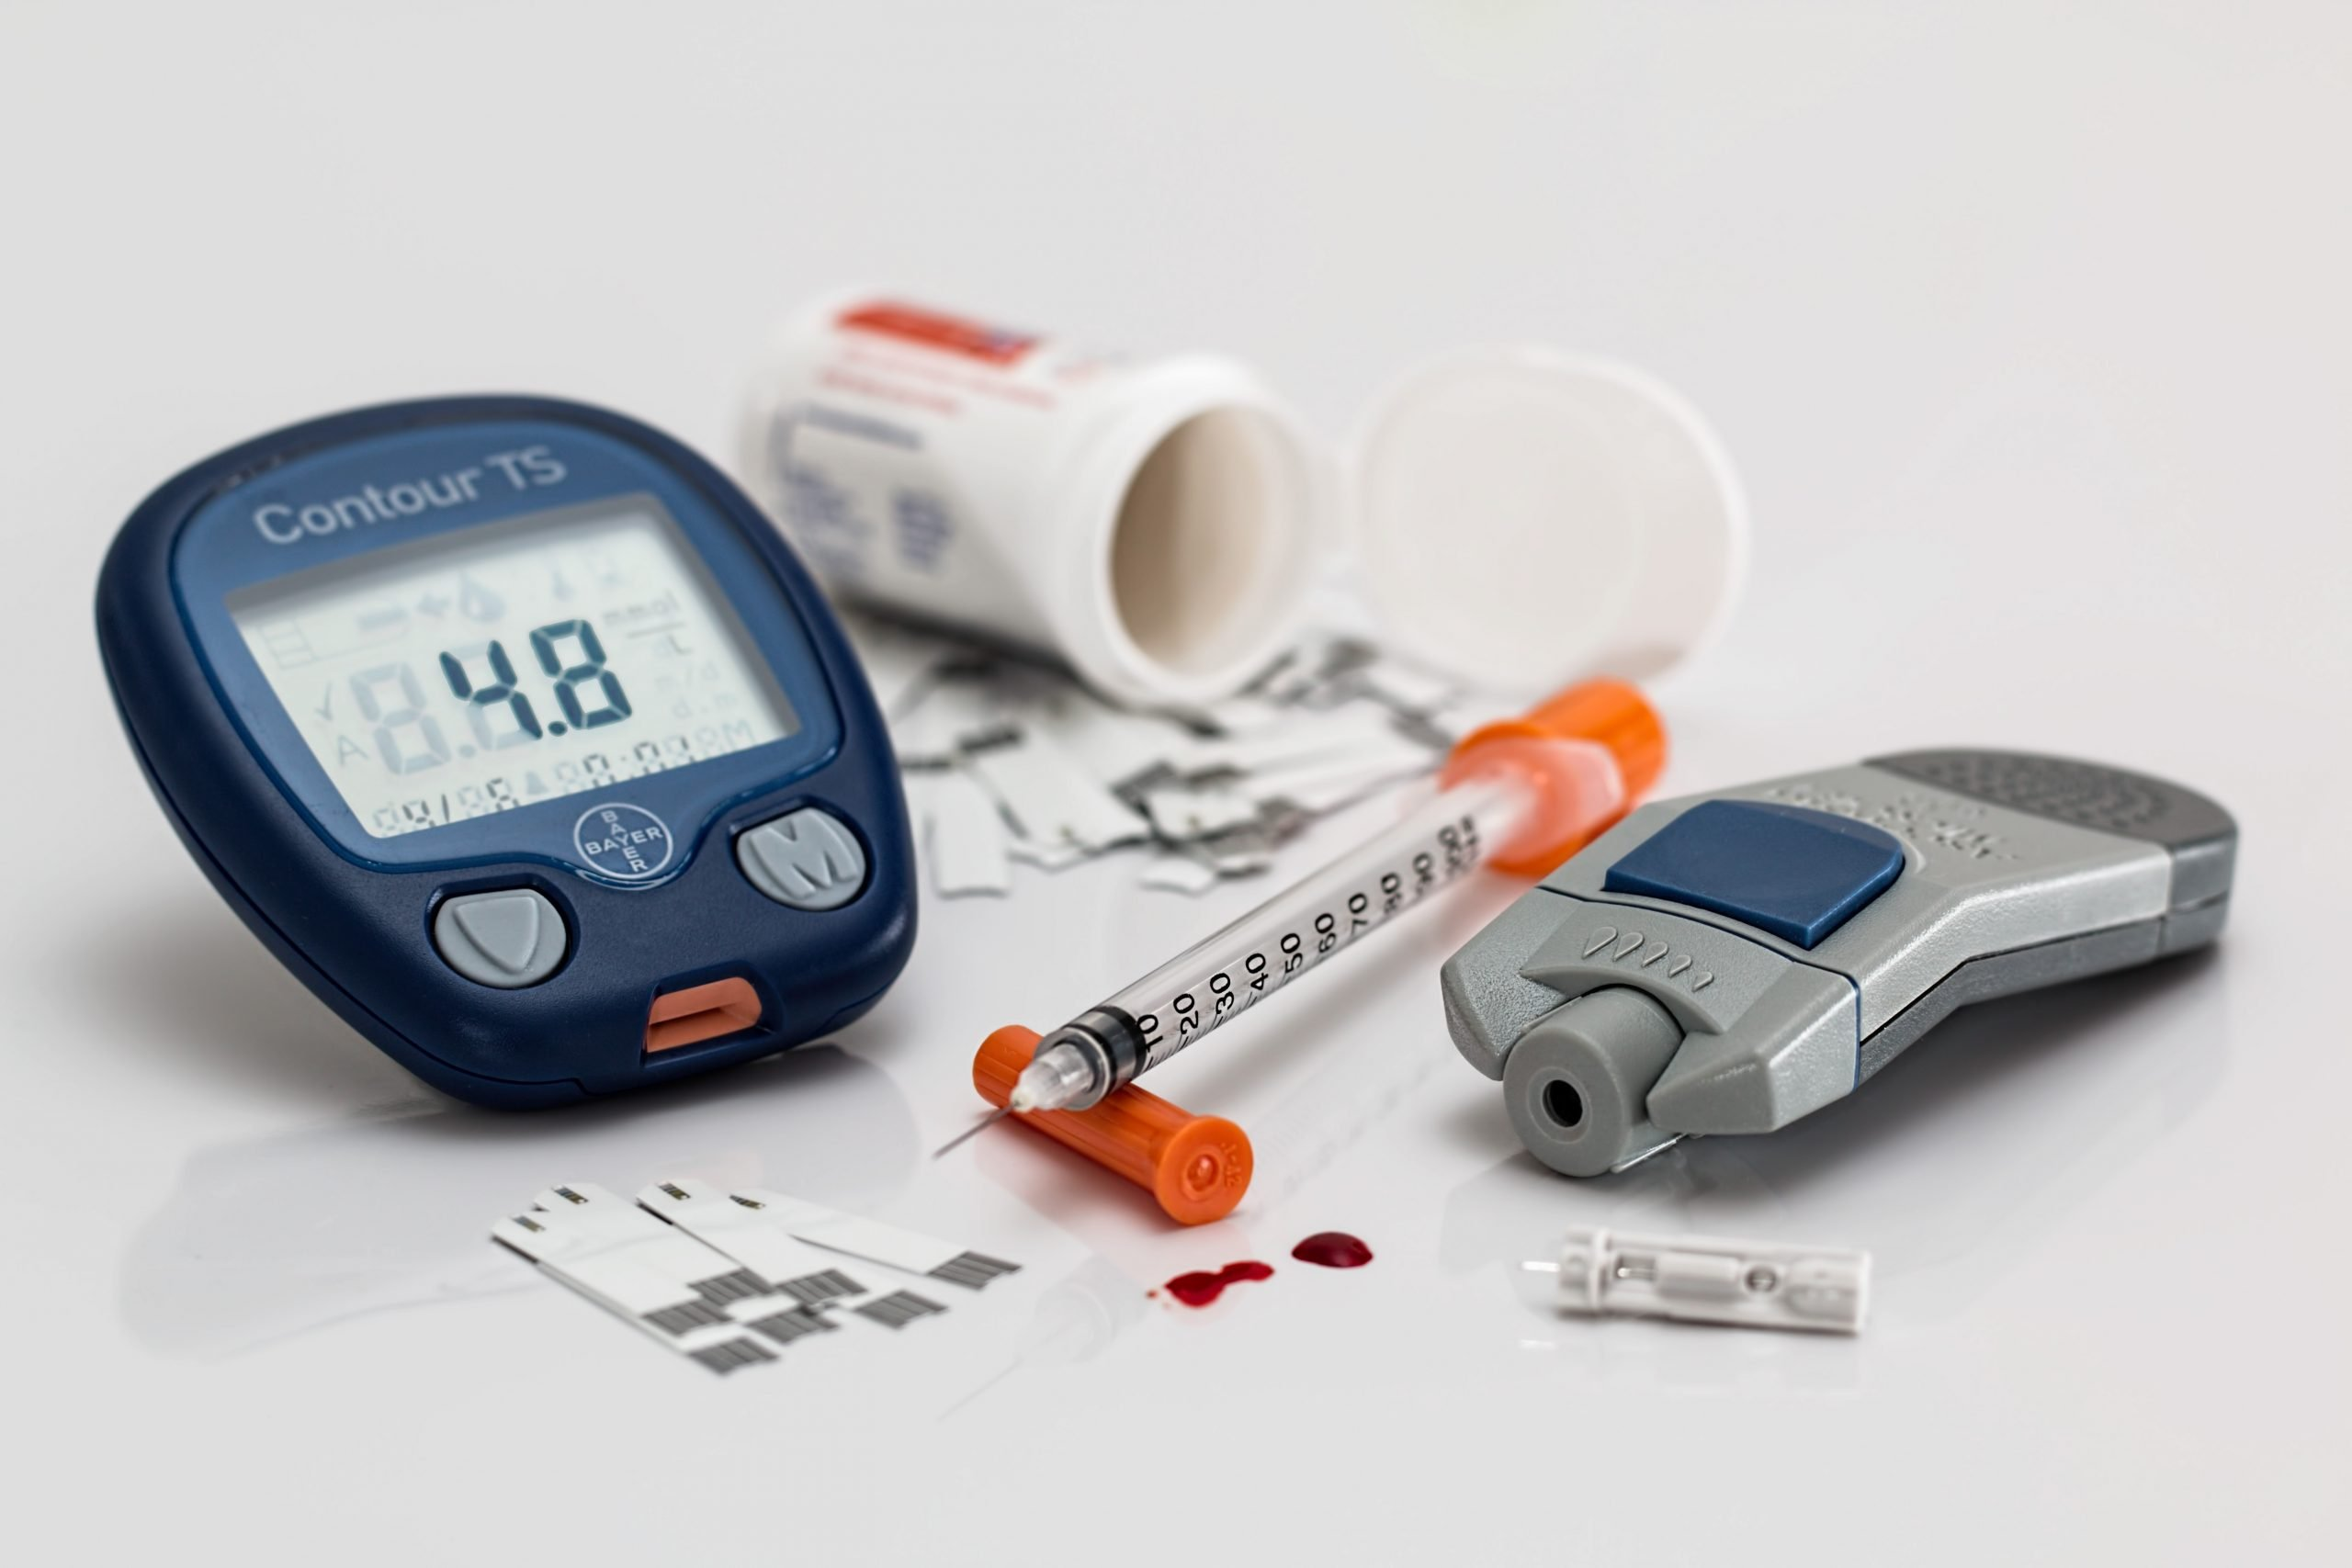 this picture shows diabtes blood glucose monitors and insulin